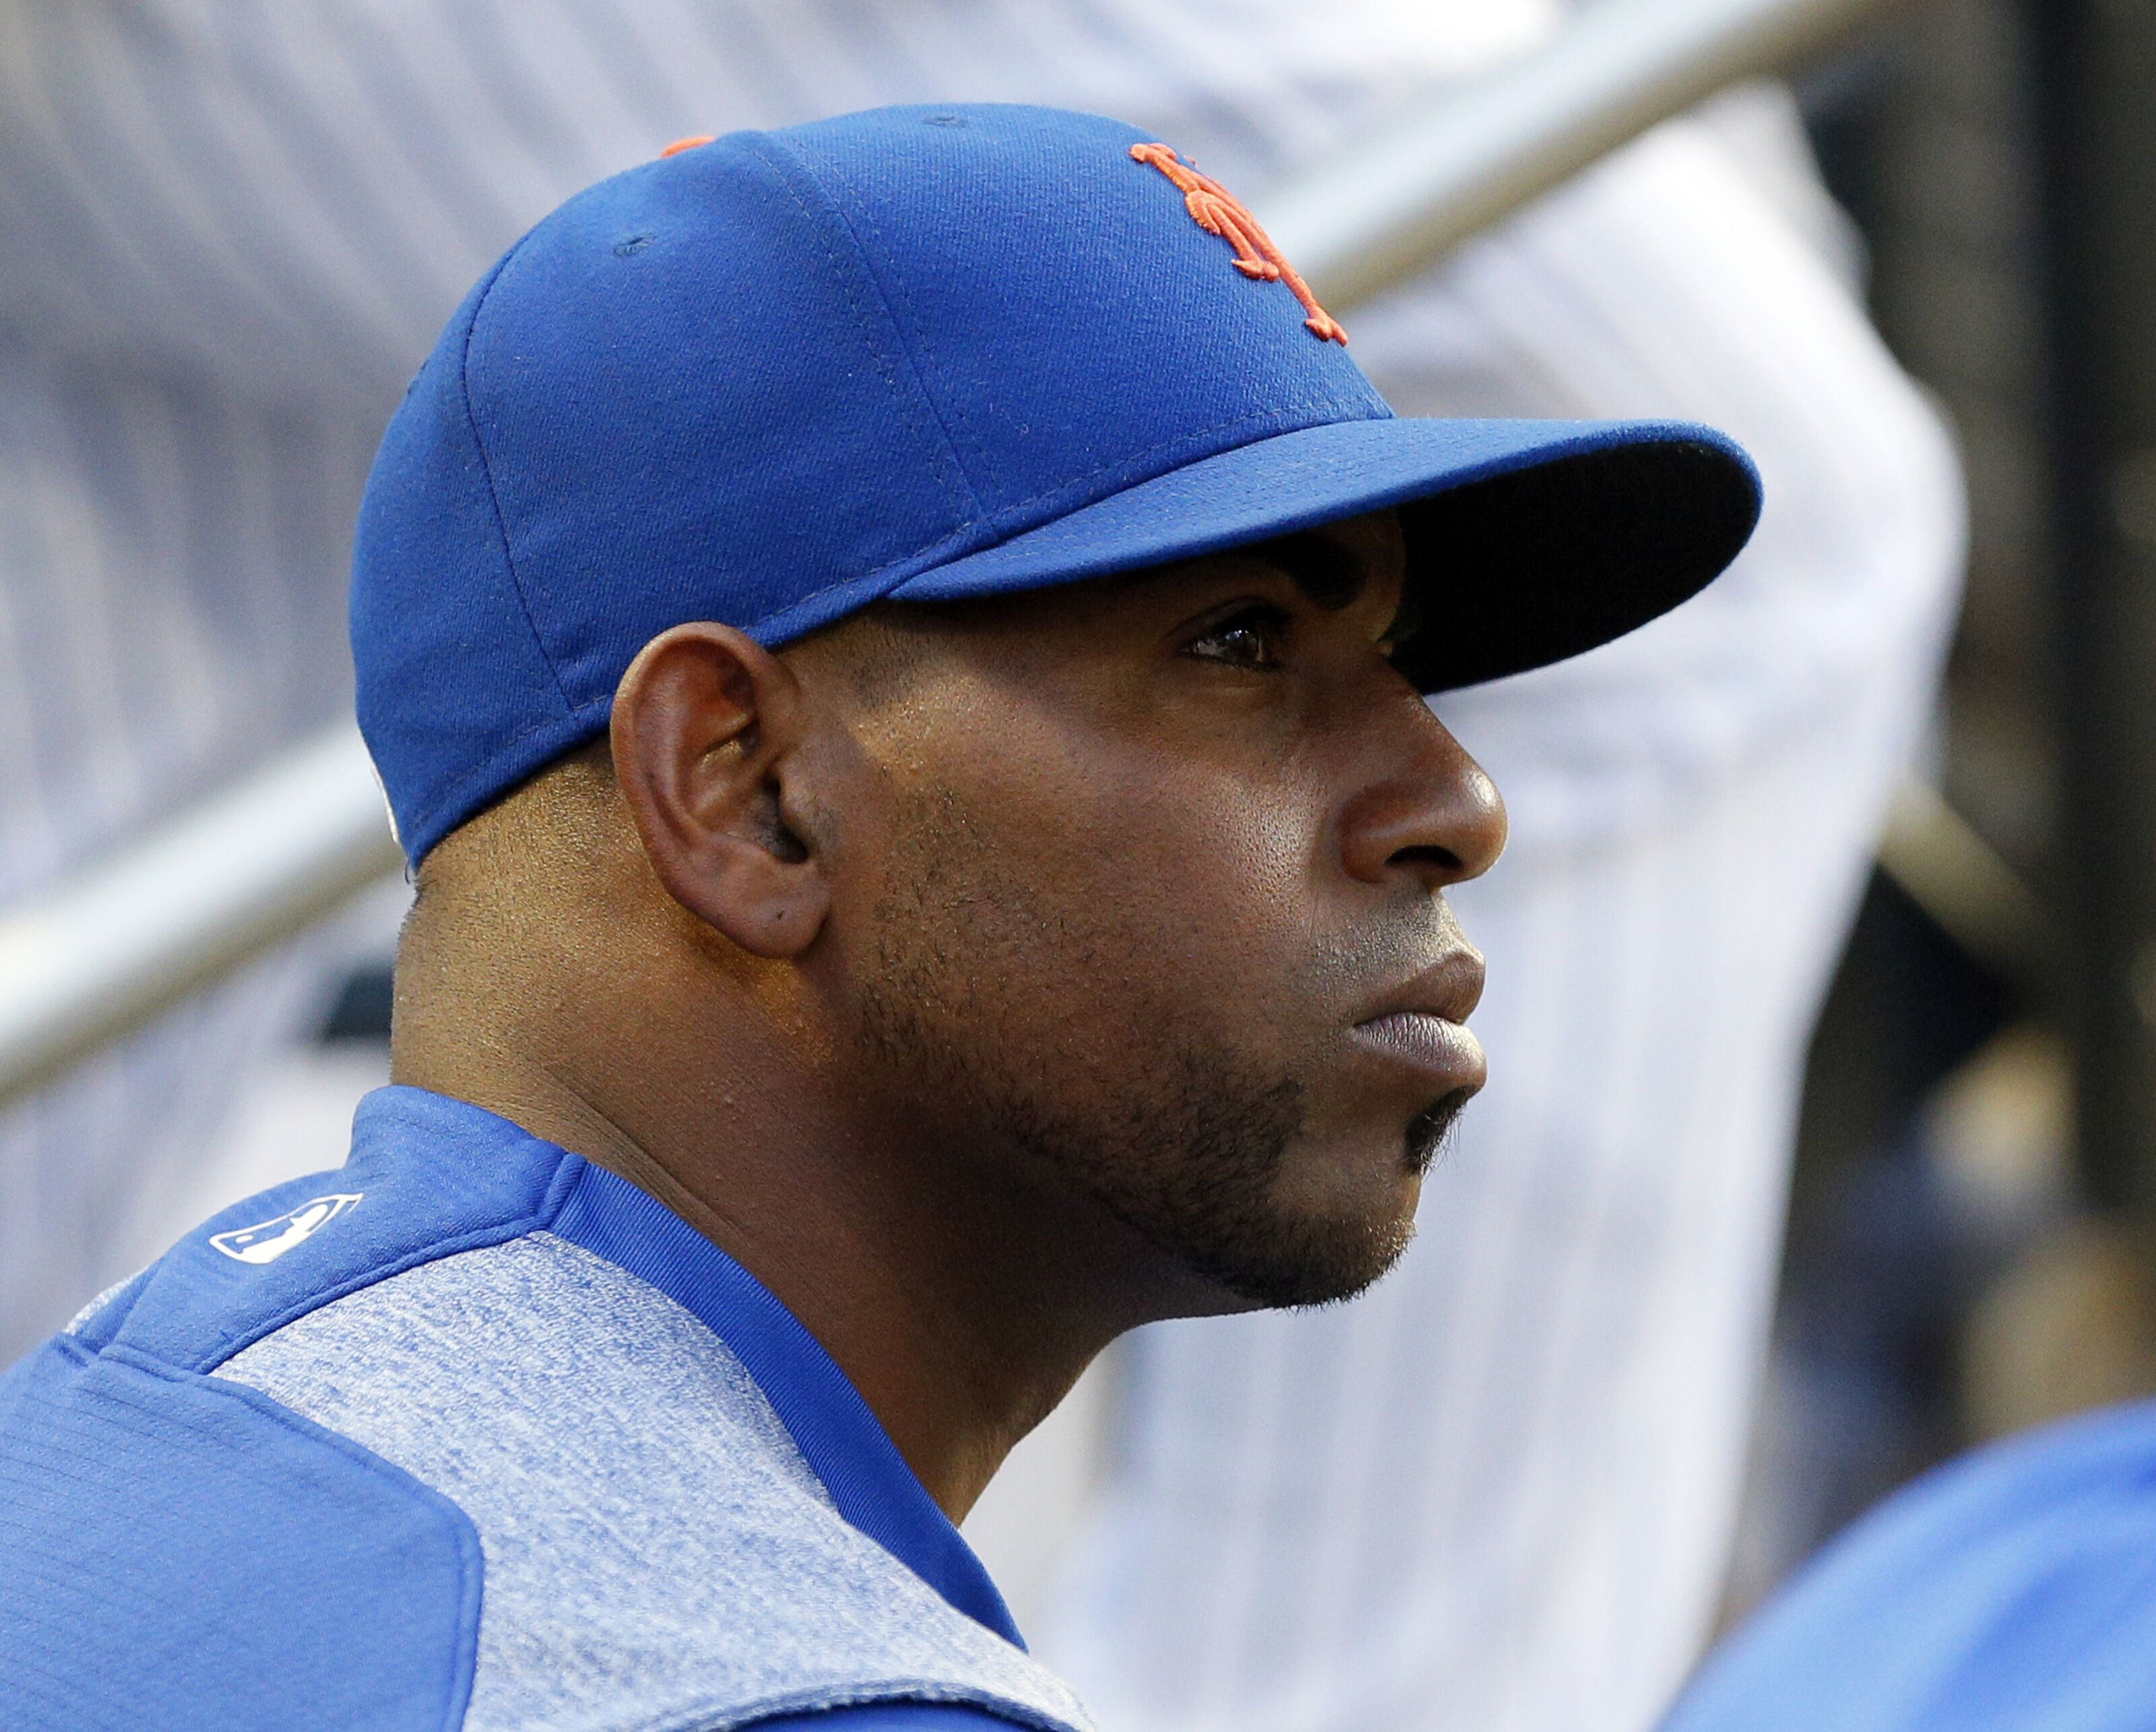 New York Mets, Yoenis Cespedes amend current contract: a timeline